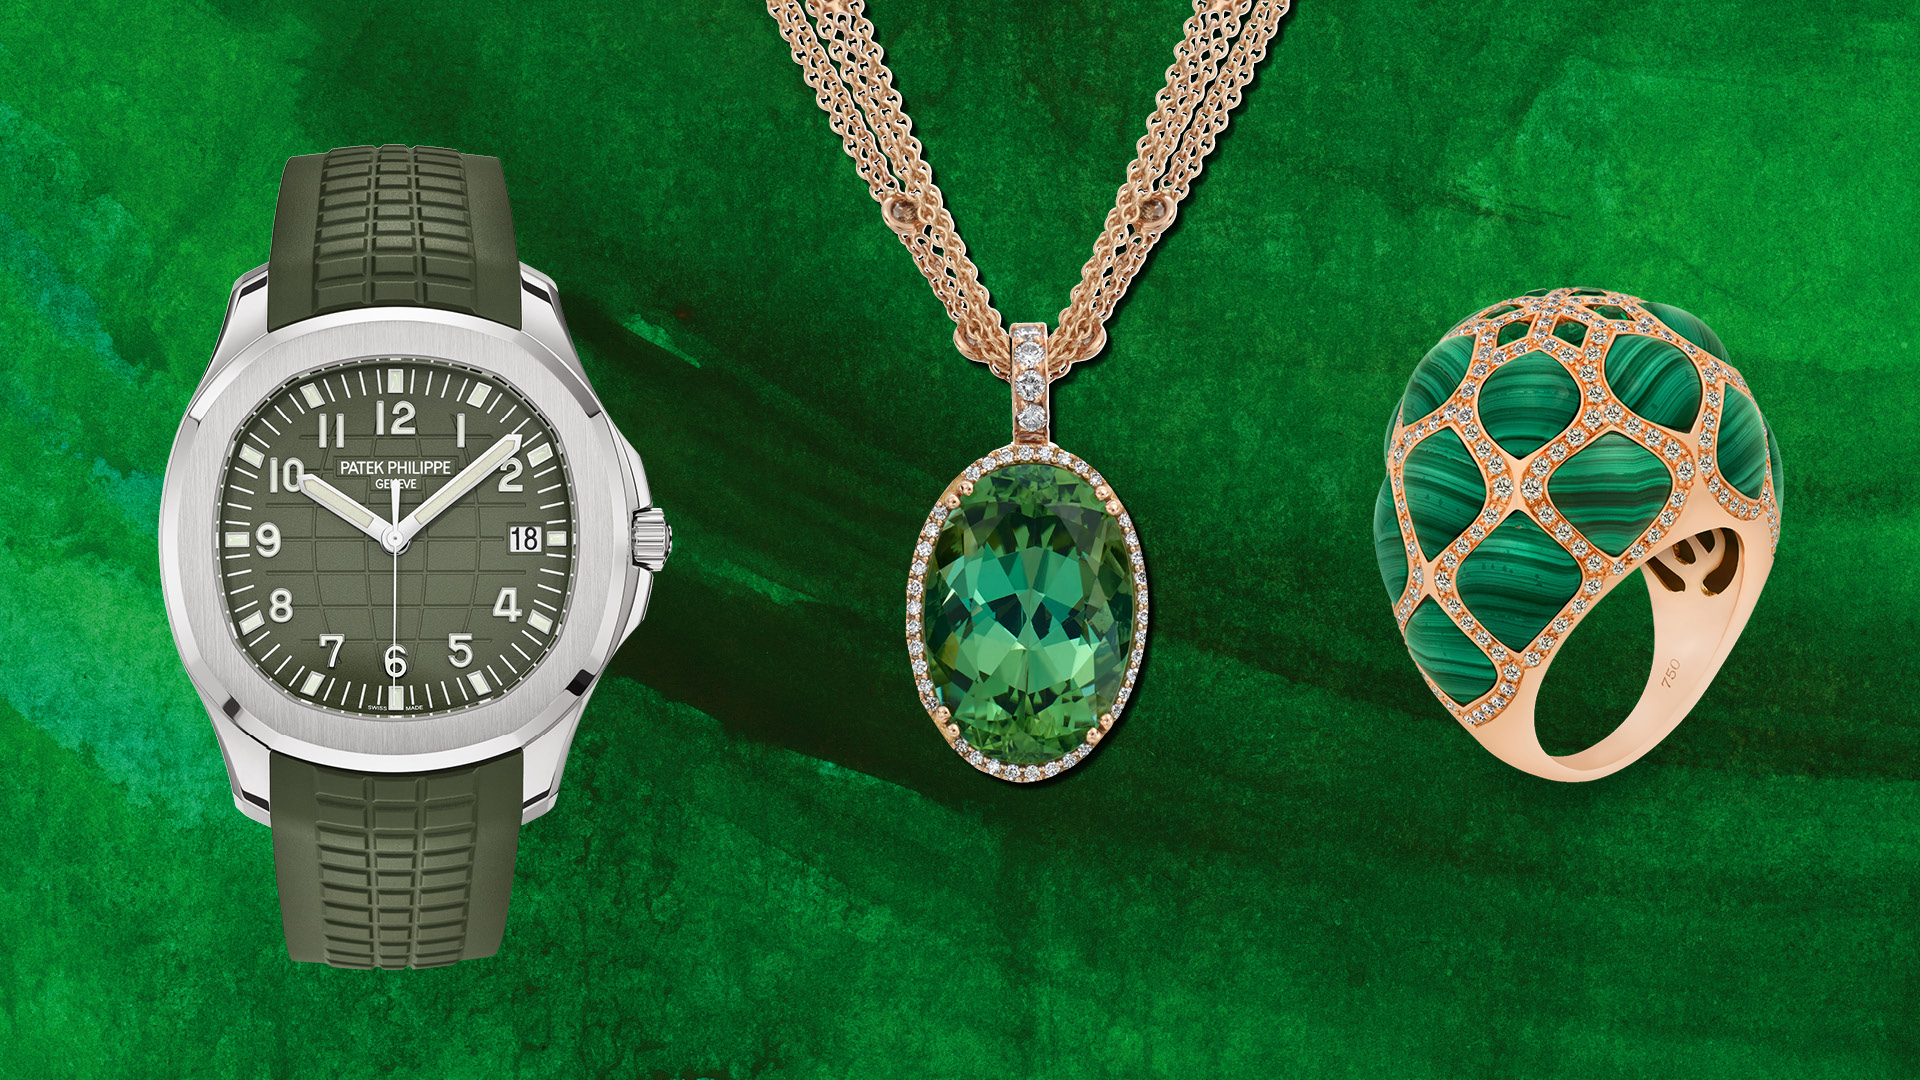 Patek Philippe Aquanaut Ref. 5168G, Heinz Mayer pendant with tourmaline, Sofragem Persepolis ring (from left)